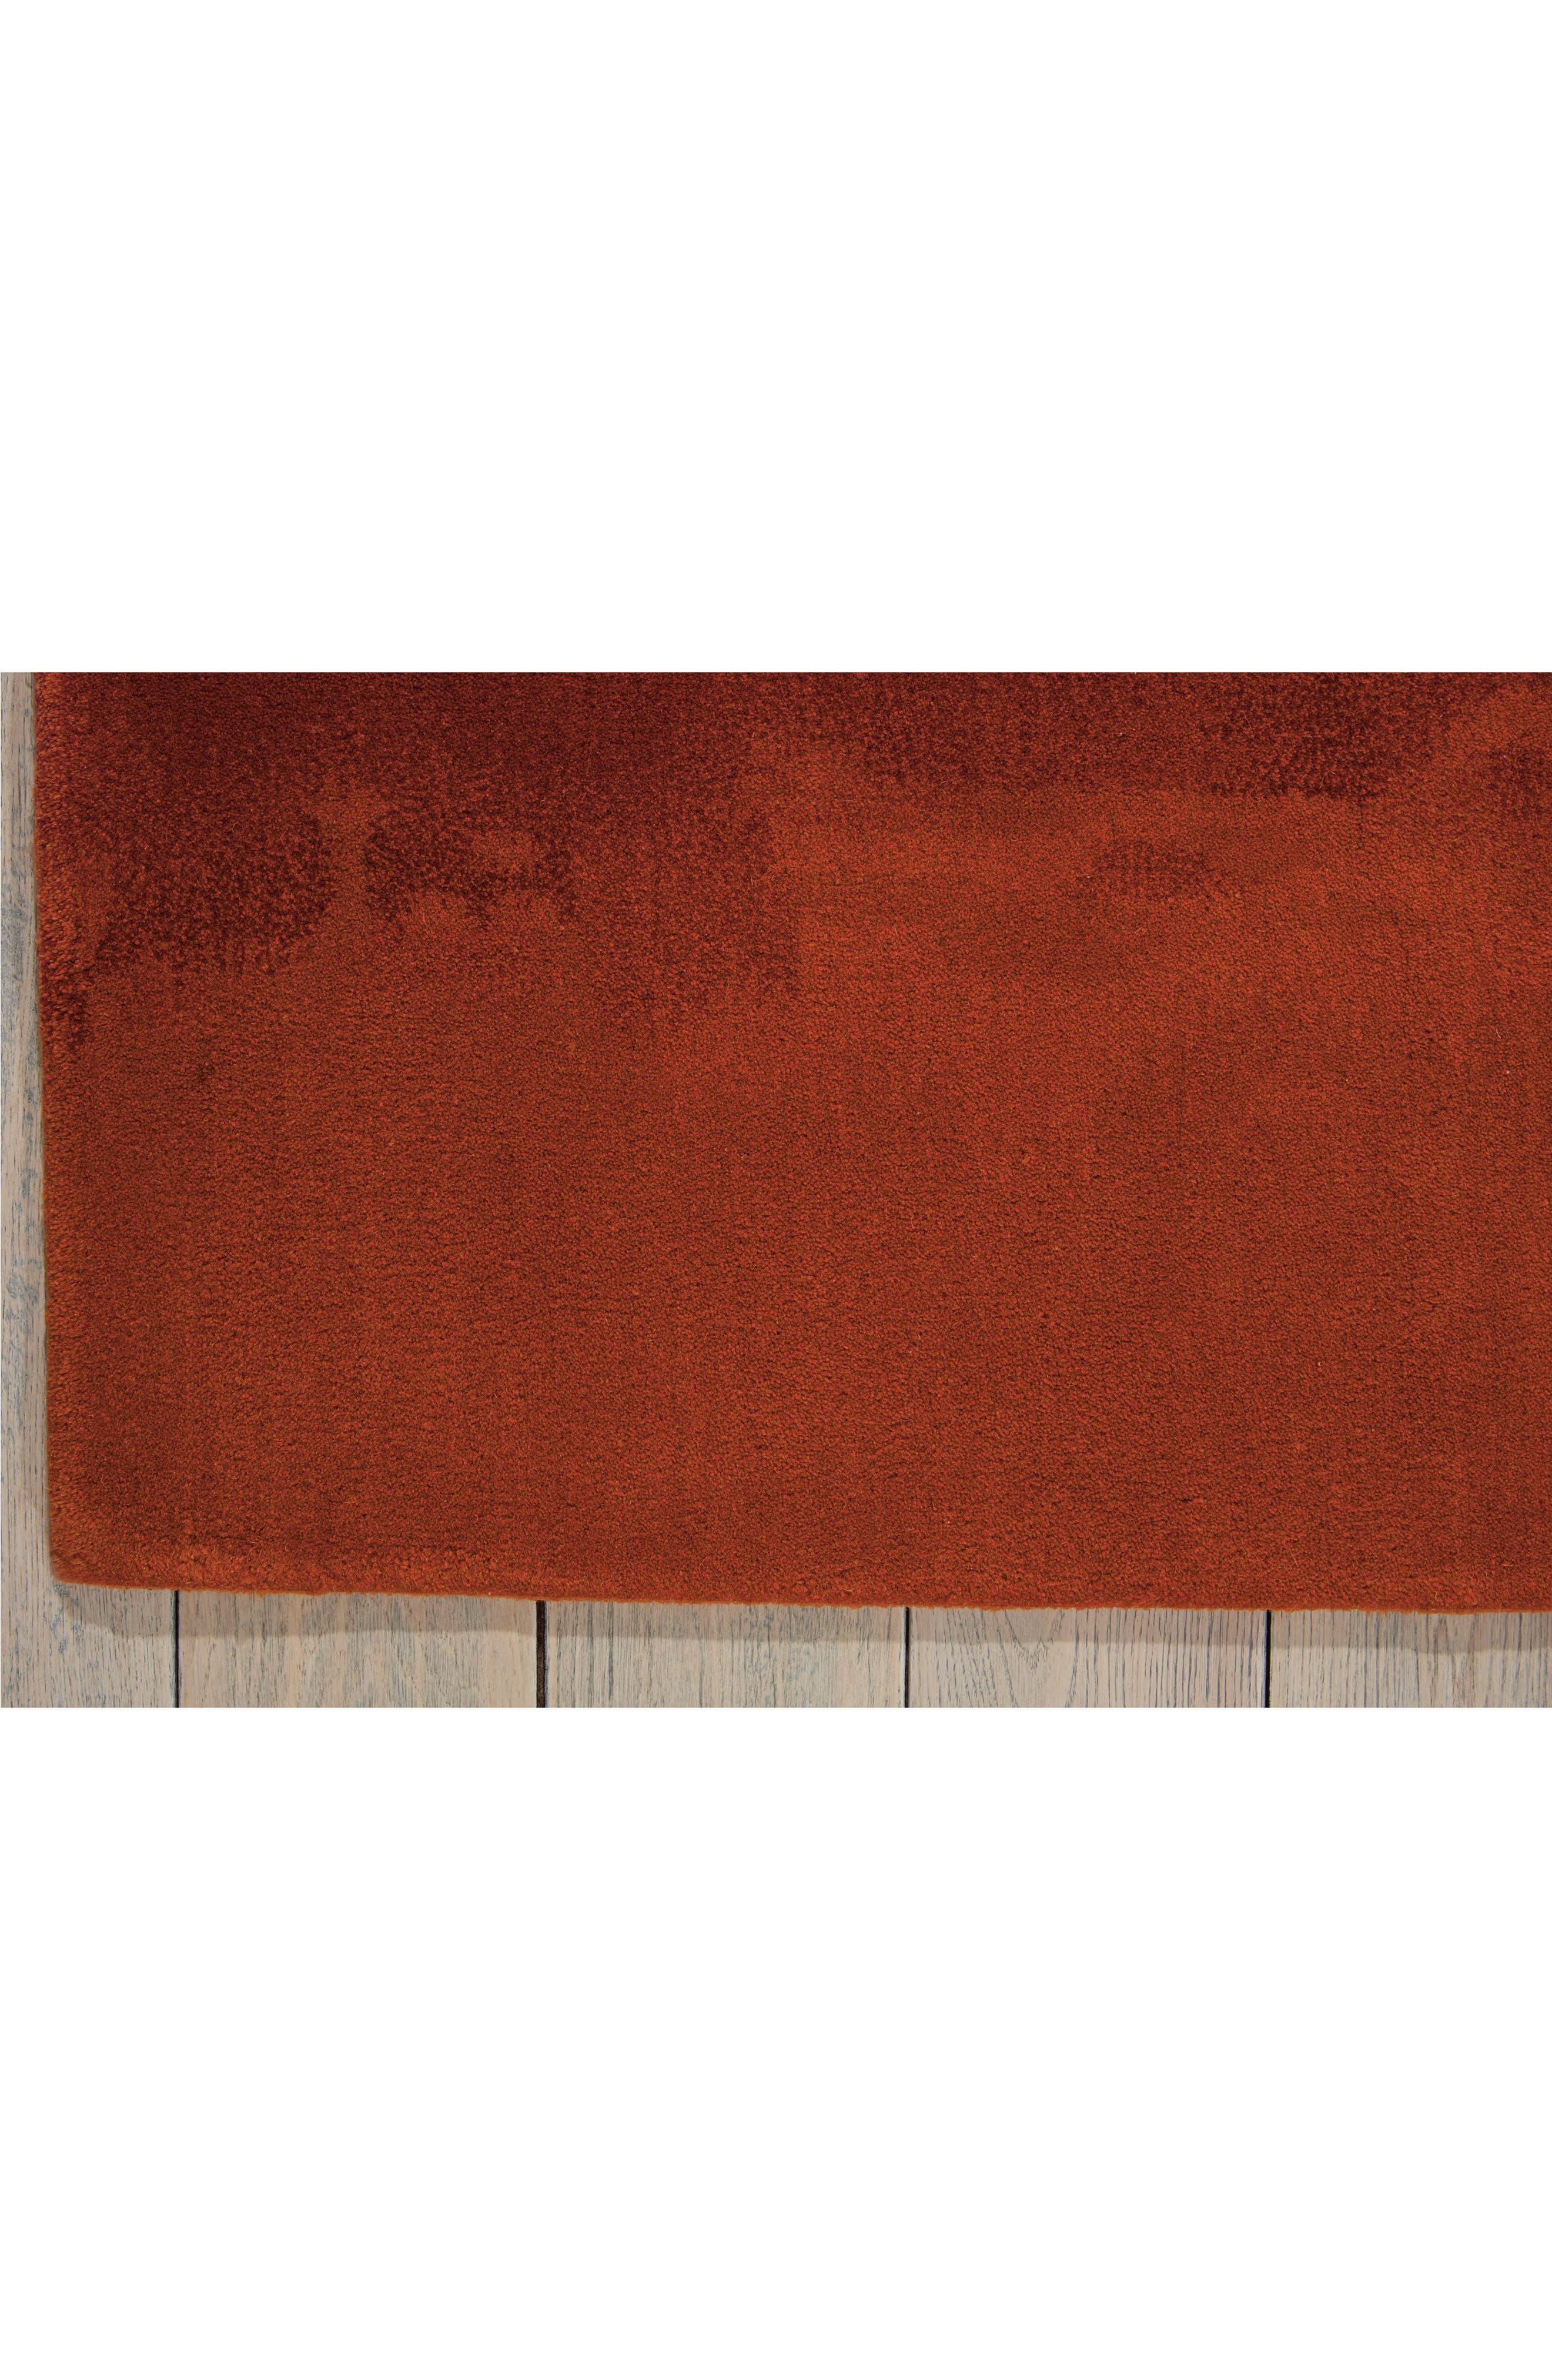 Luster Wash Wool Area Rug,                             Alternate thumbnail 10, color,